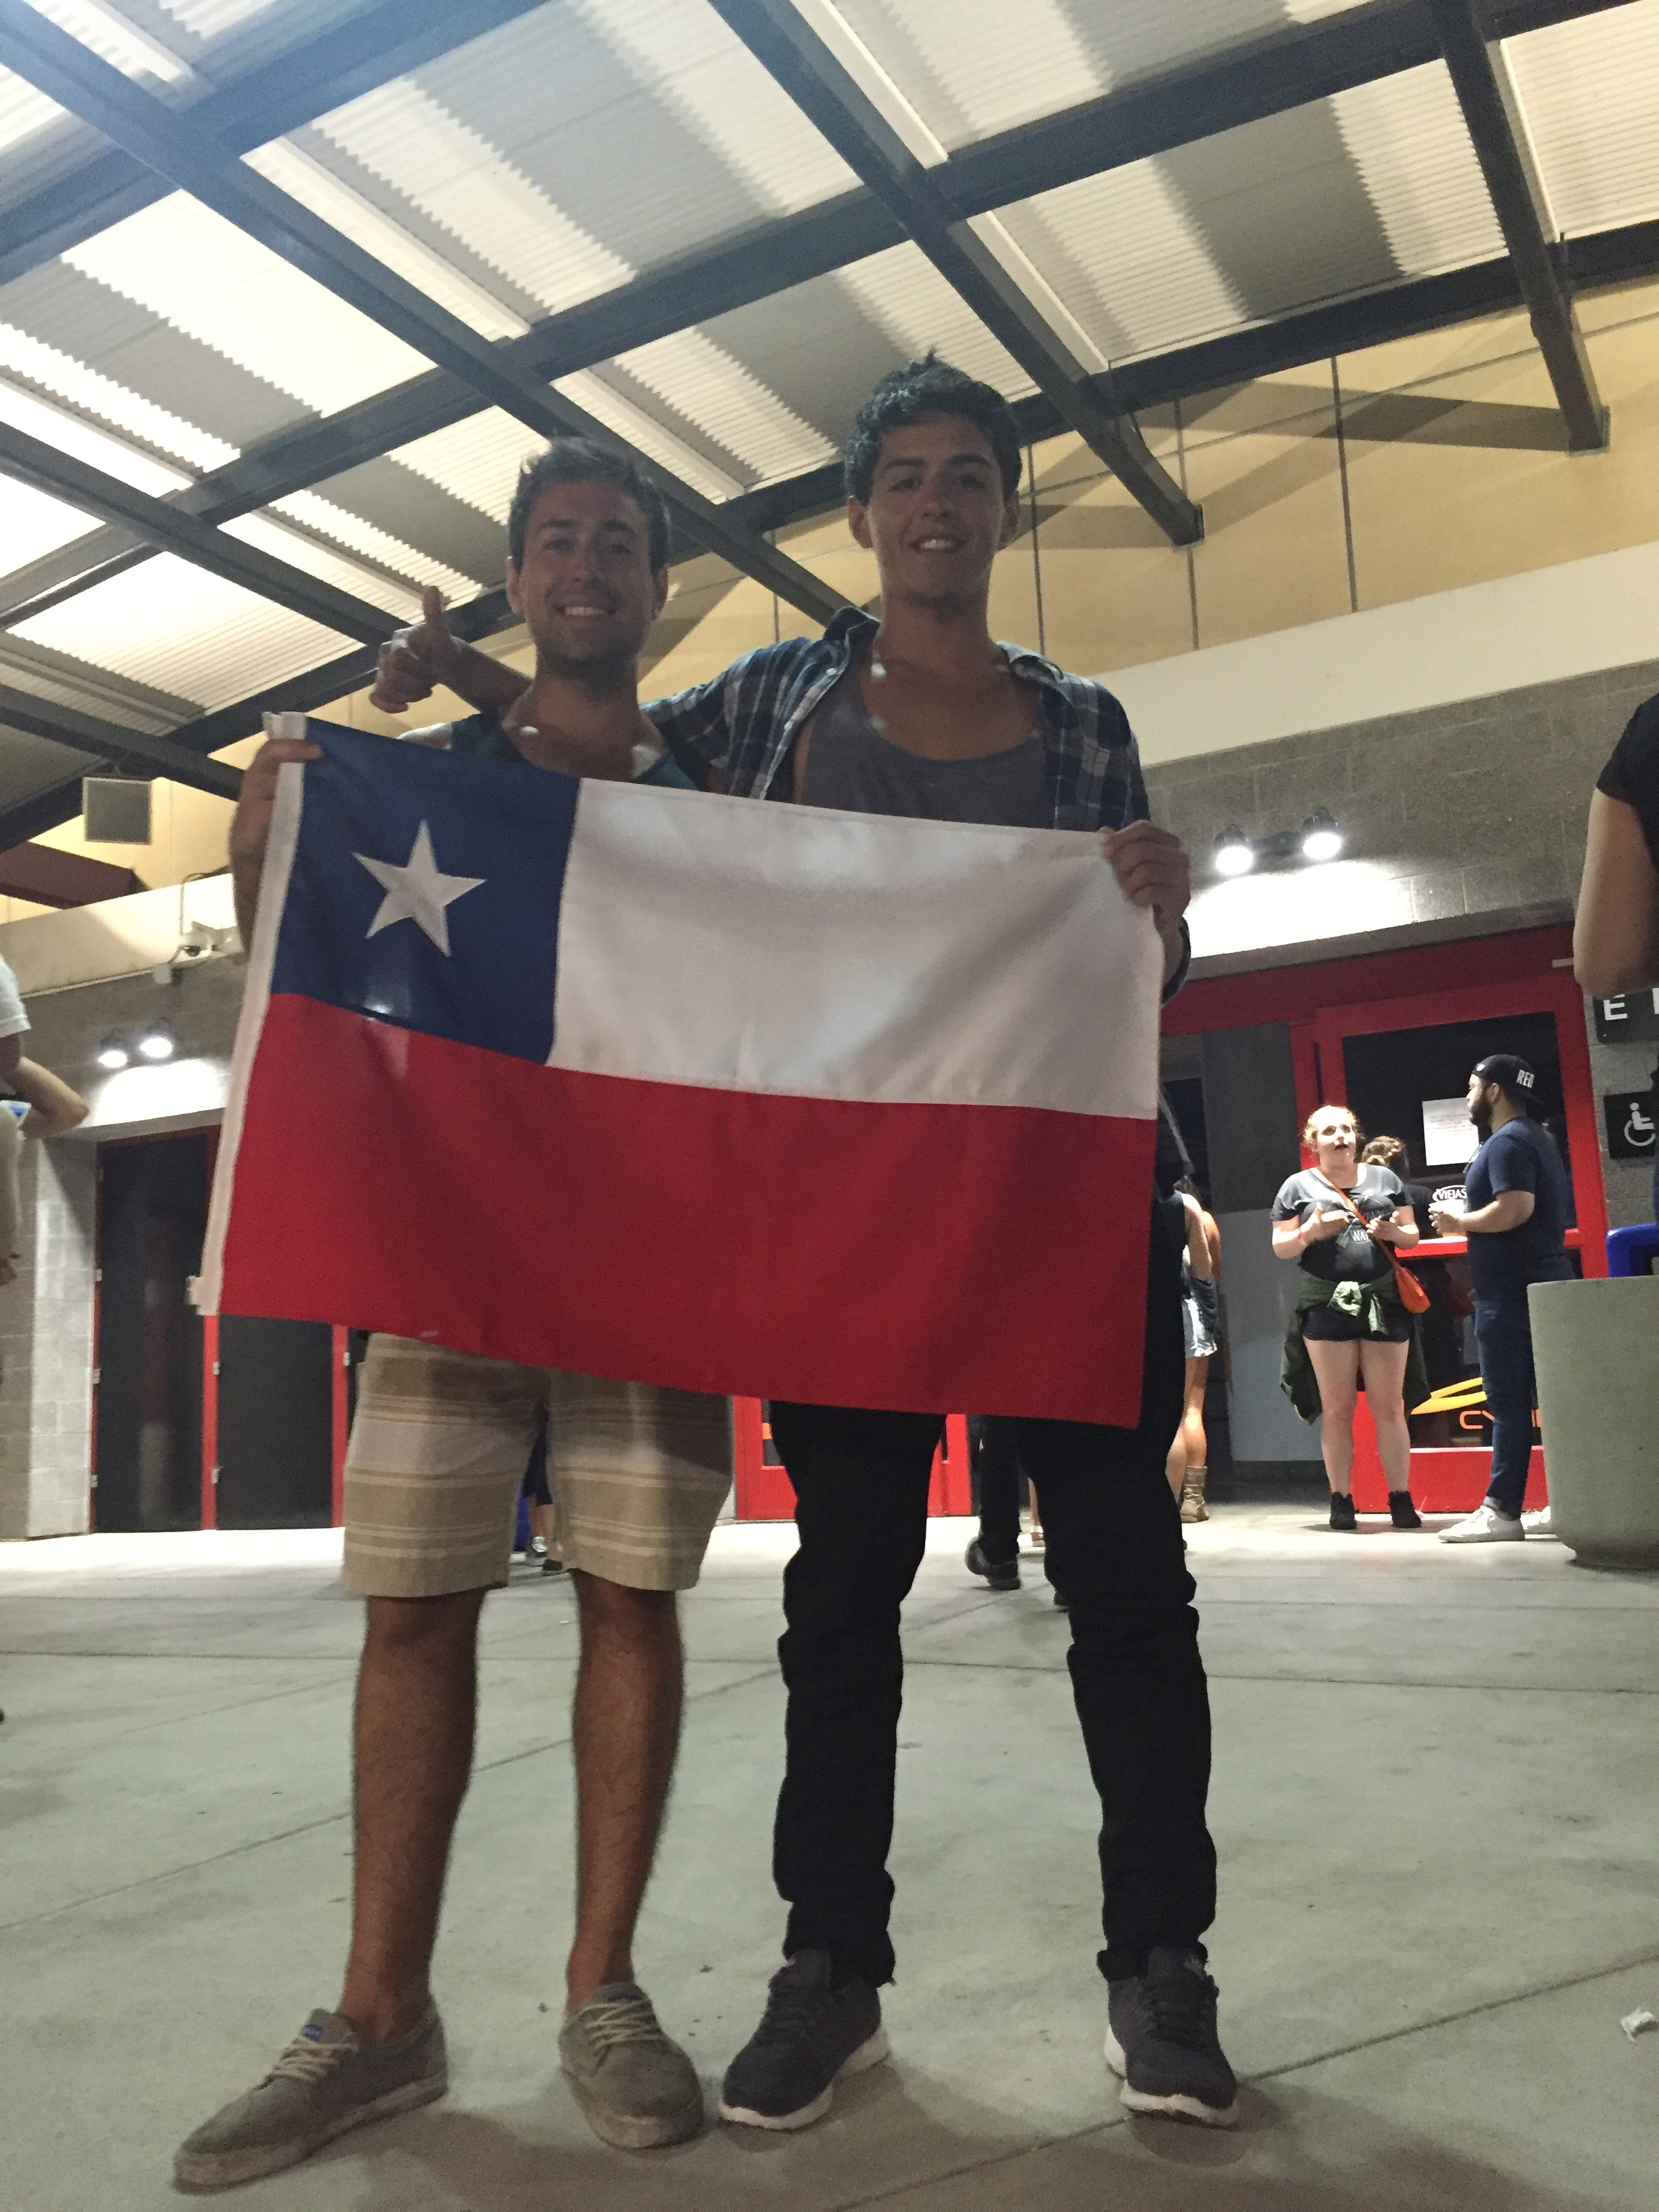 Chileans take a photo with their flag at a concert in San Diego.